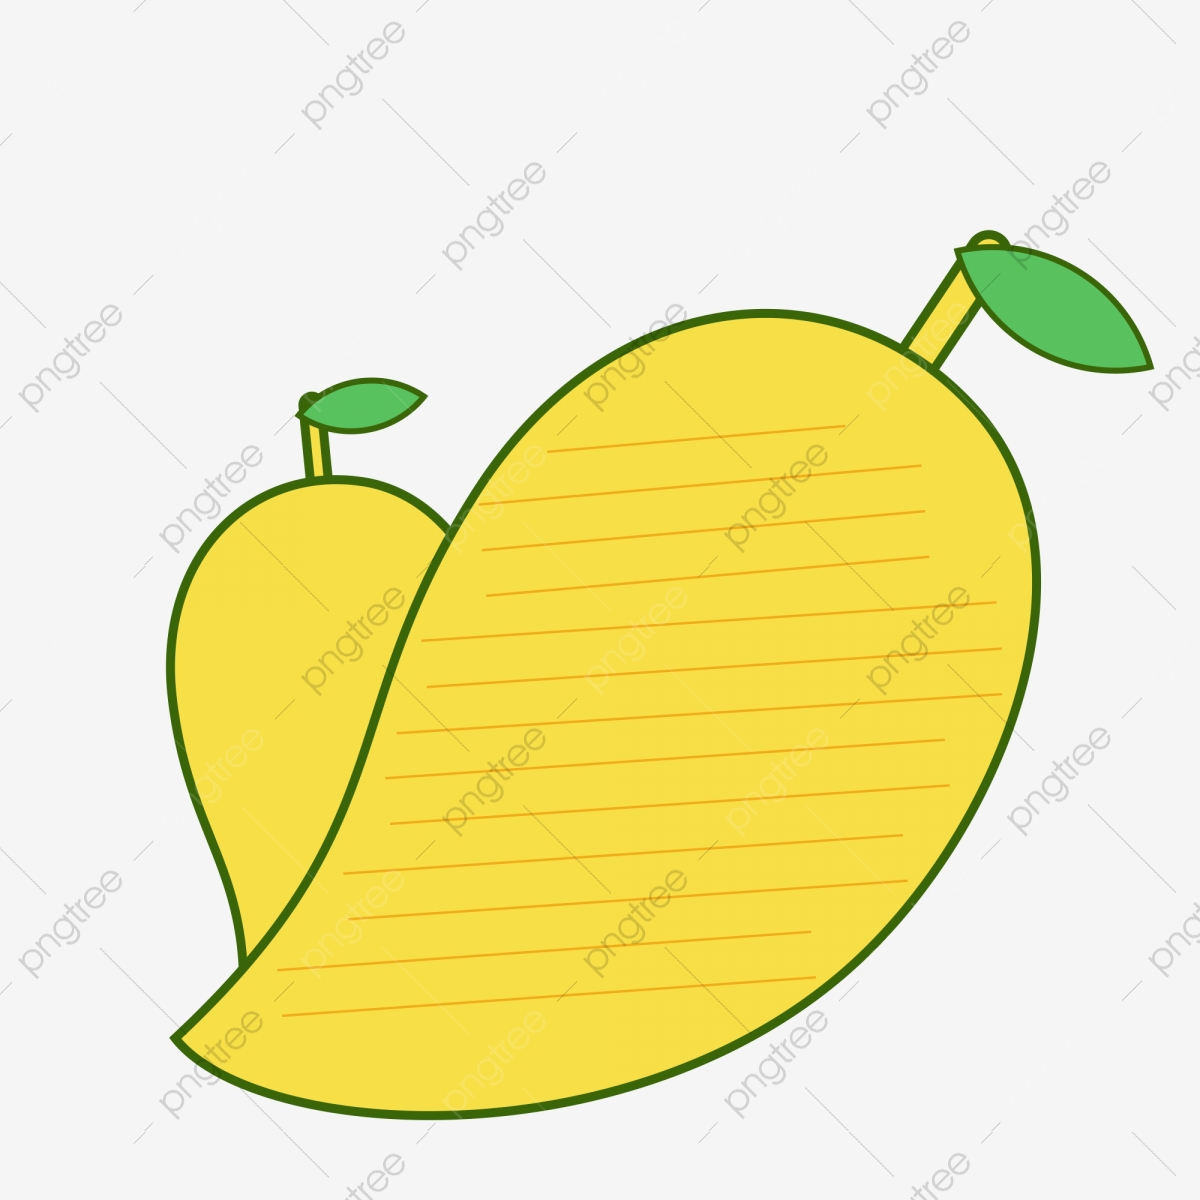 Small fresh fruit text. Mango clipart box